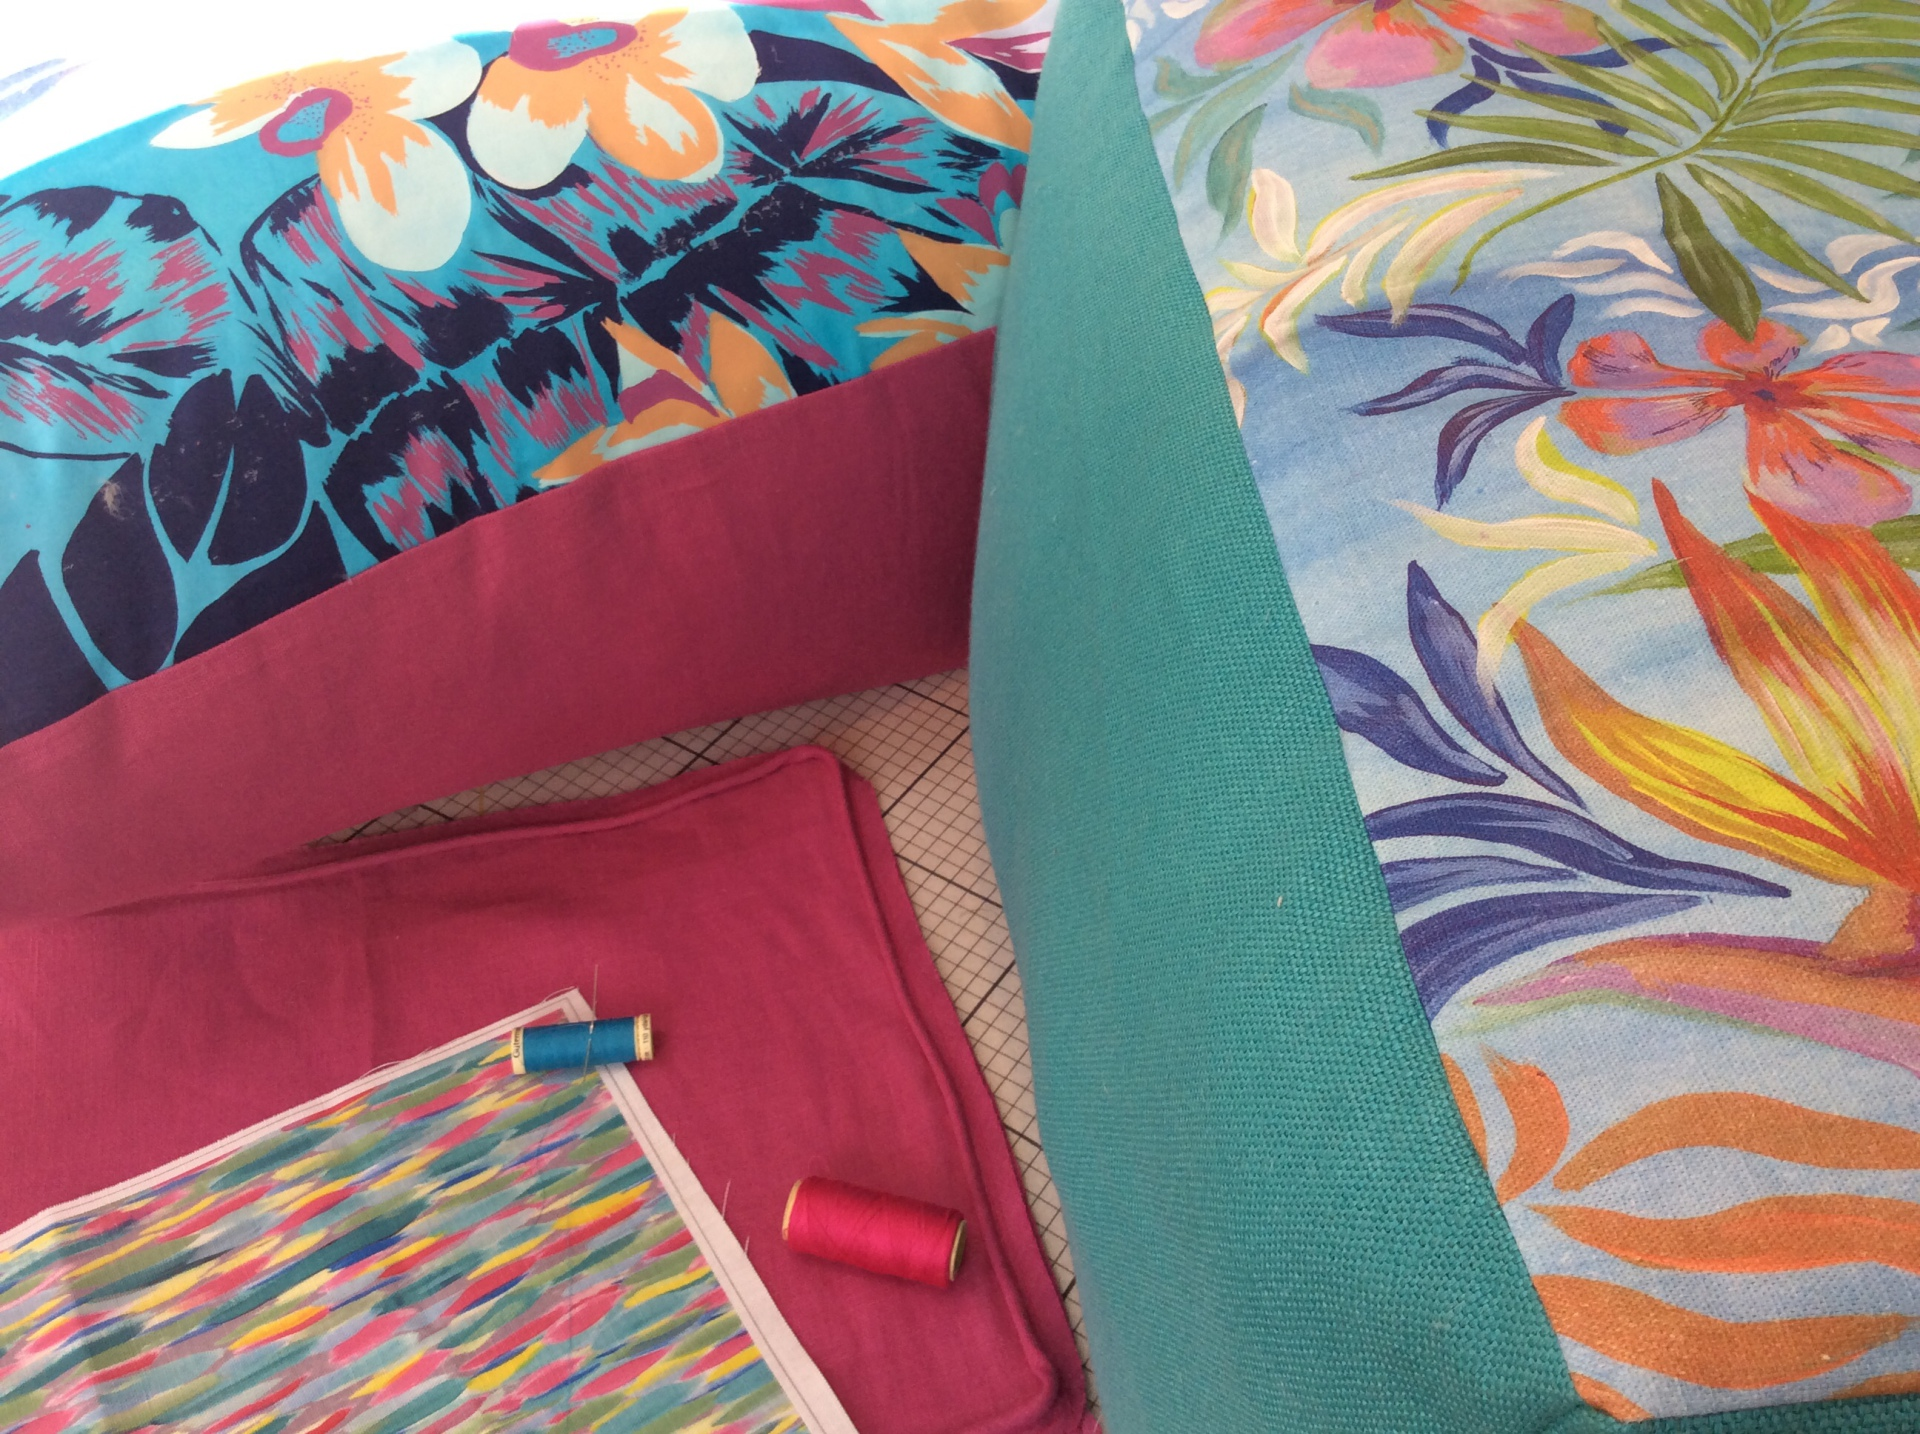 Garden cushions on bespoke fabric, Hampton